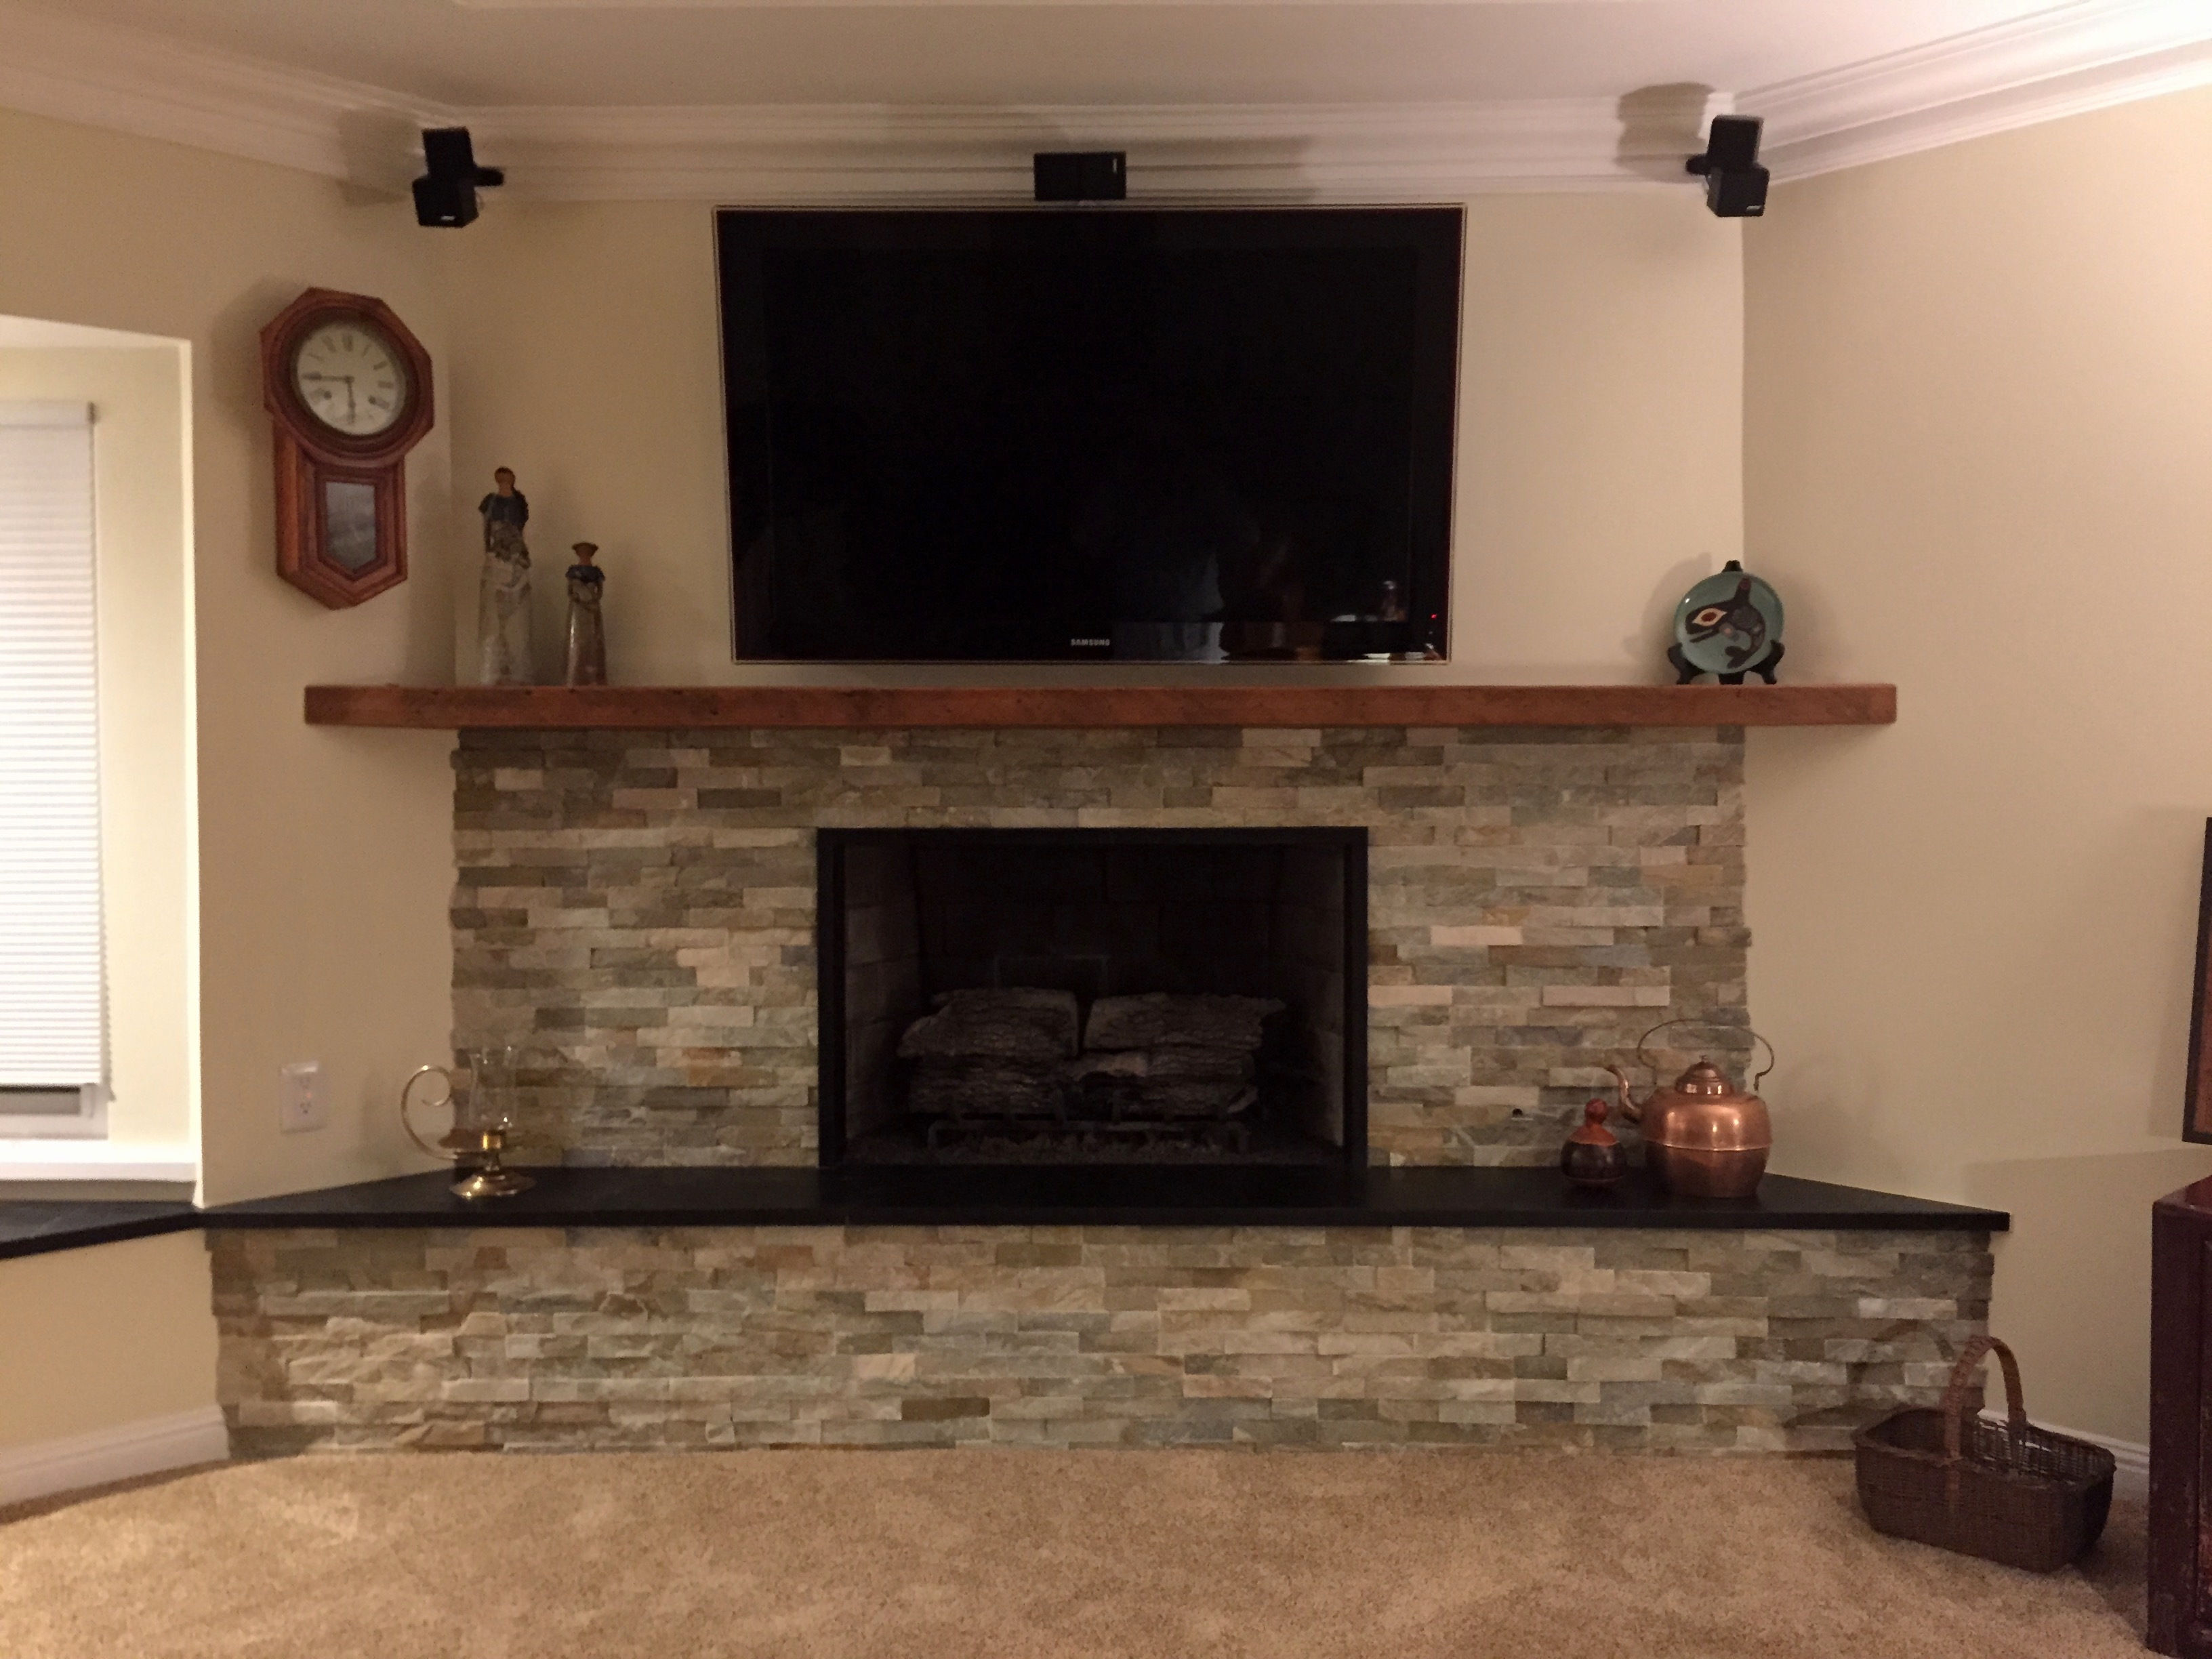 to fireplace shutterstock the proper add venting issue a complex inspector home